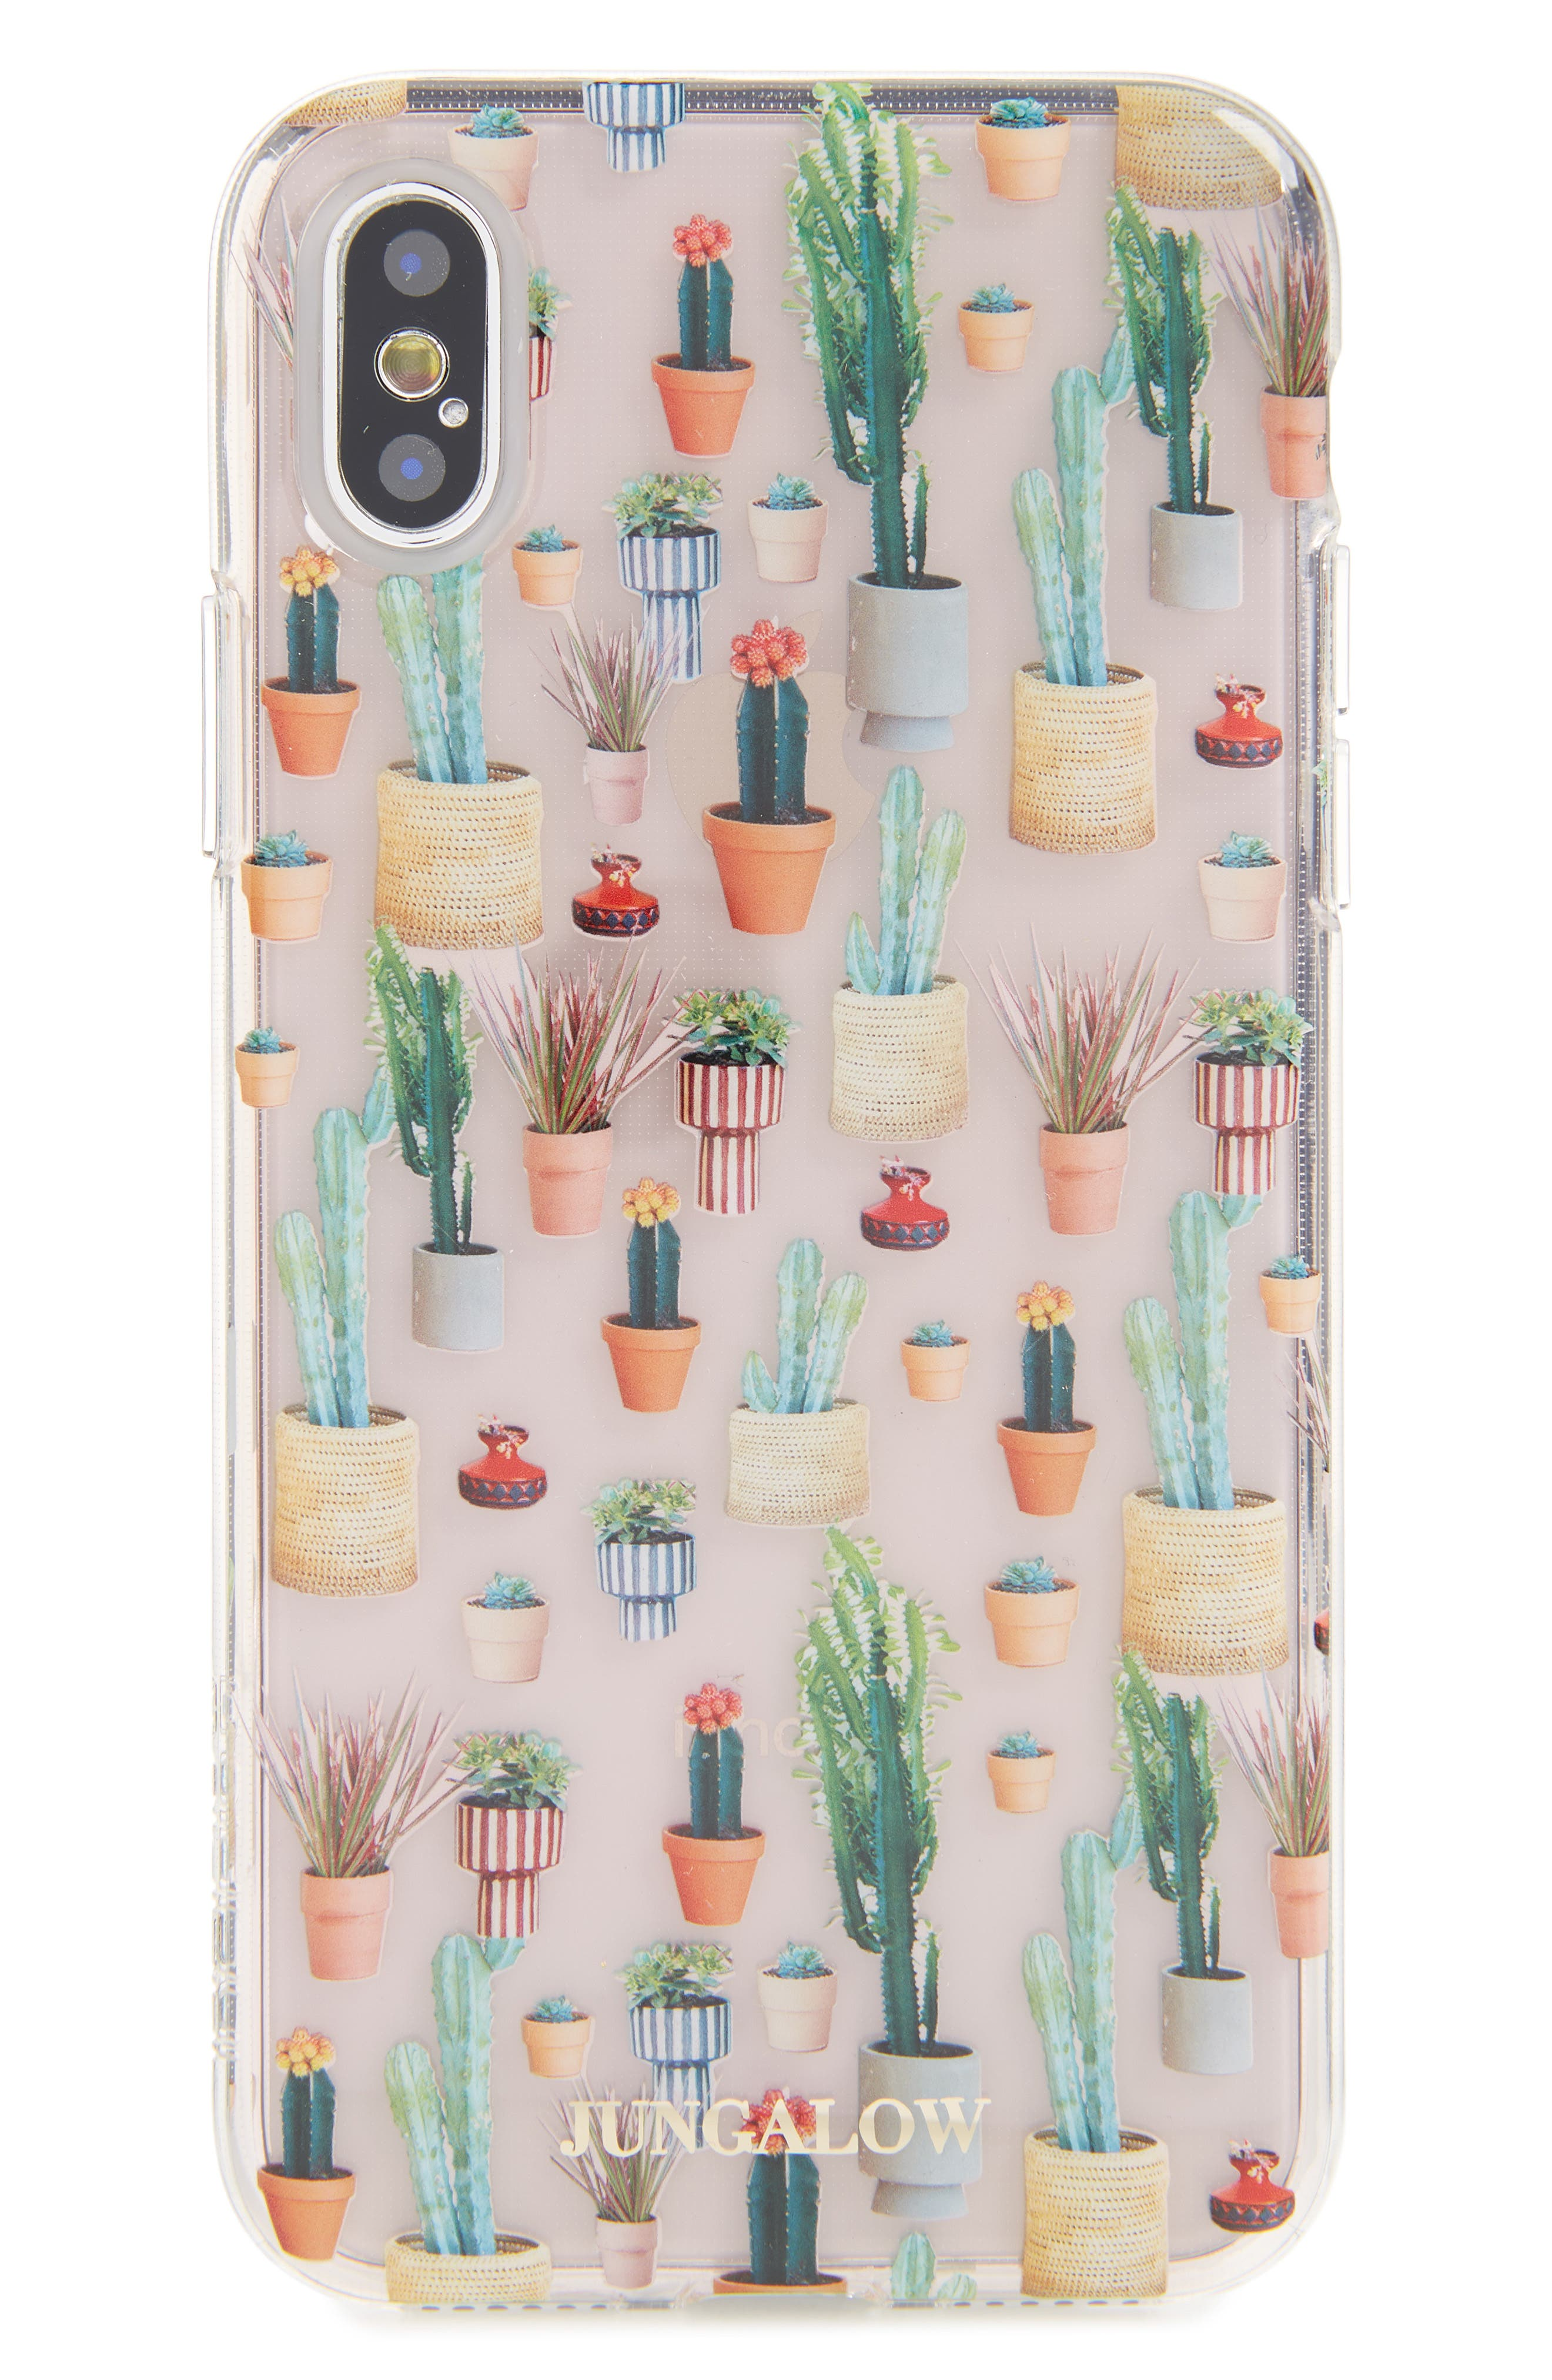 Jungalow Potted Plant iPhone X Case,                         Main,                         color, Clear Multi